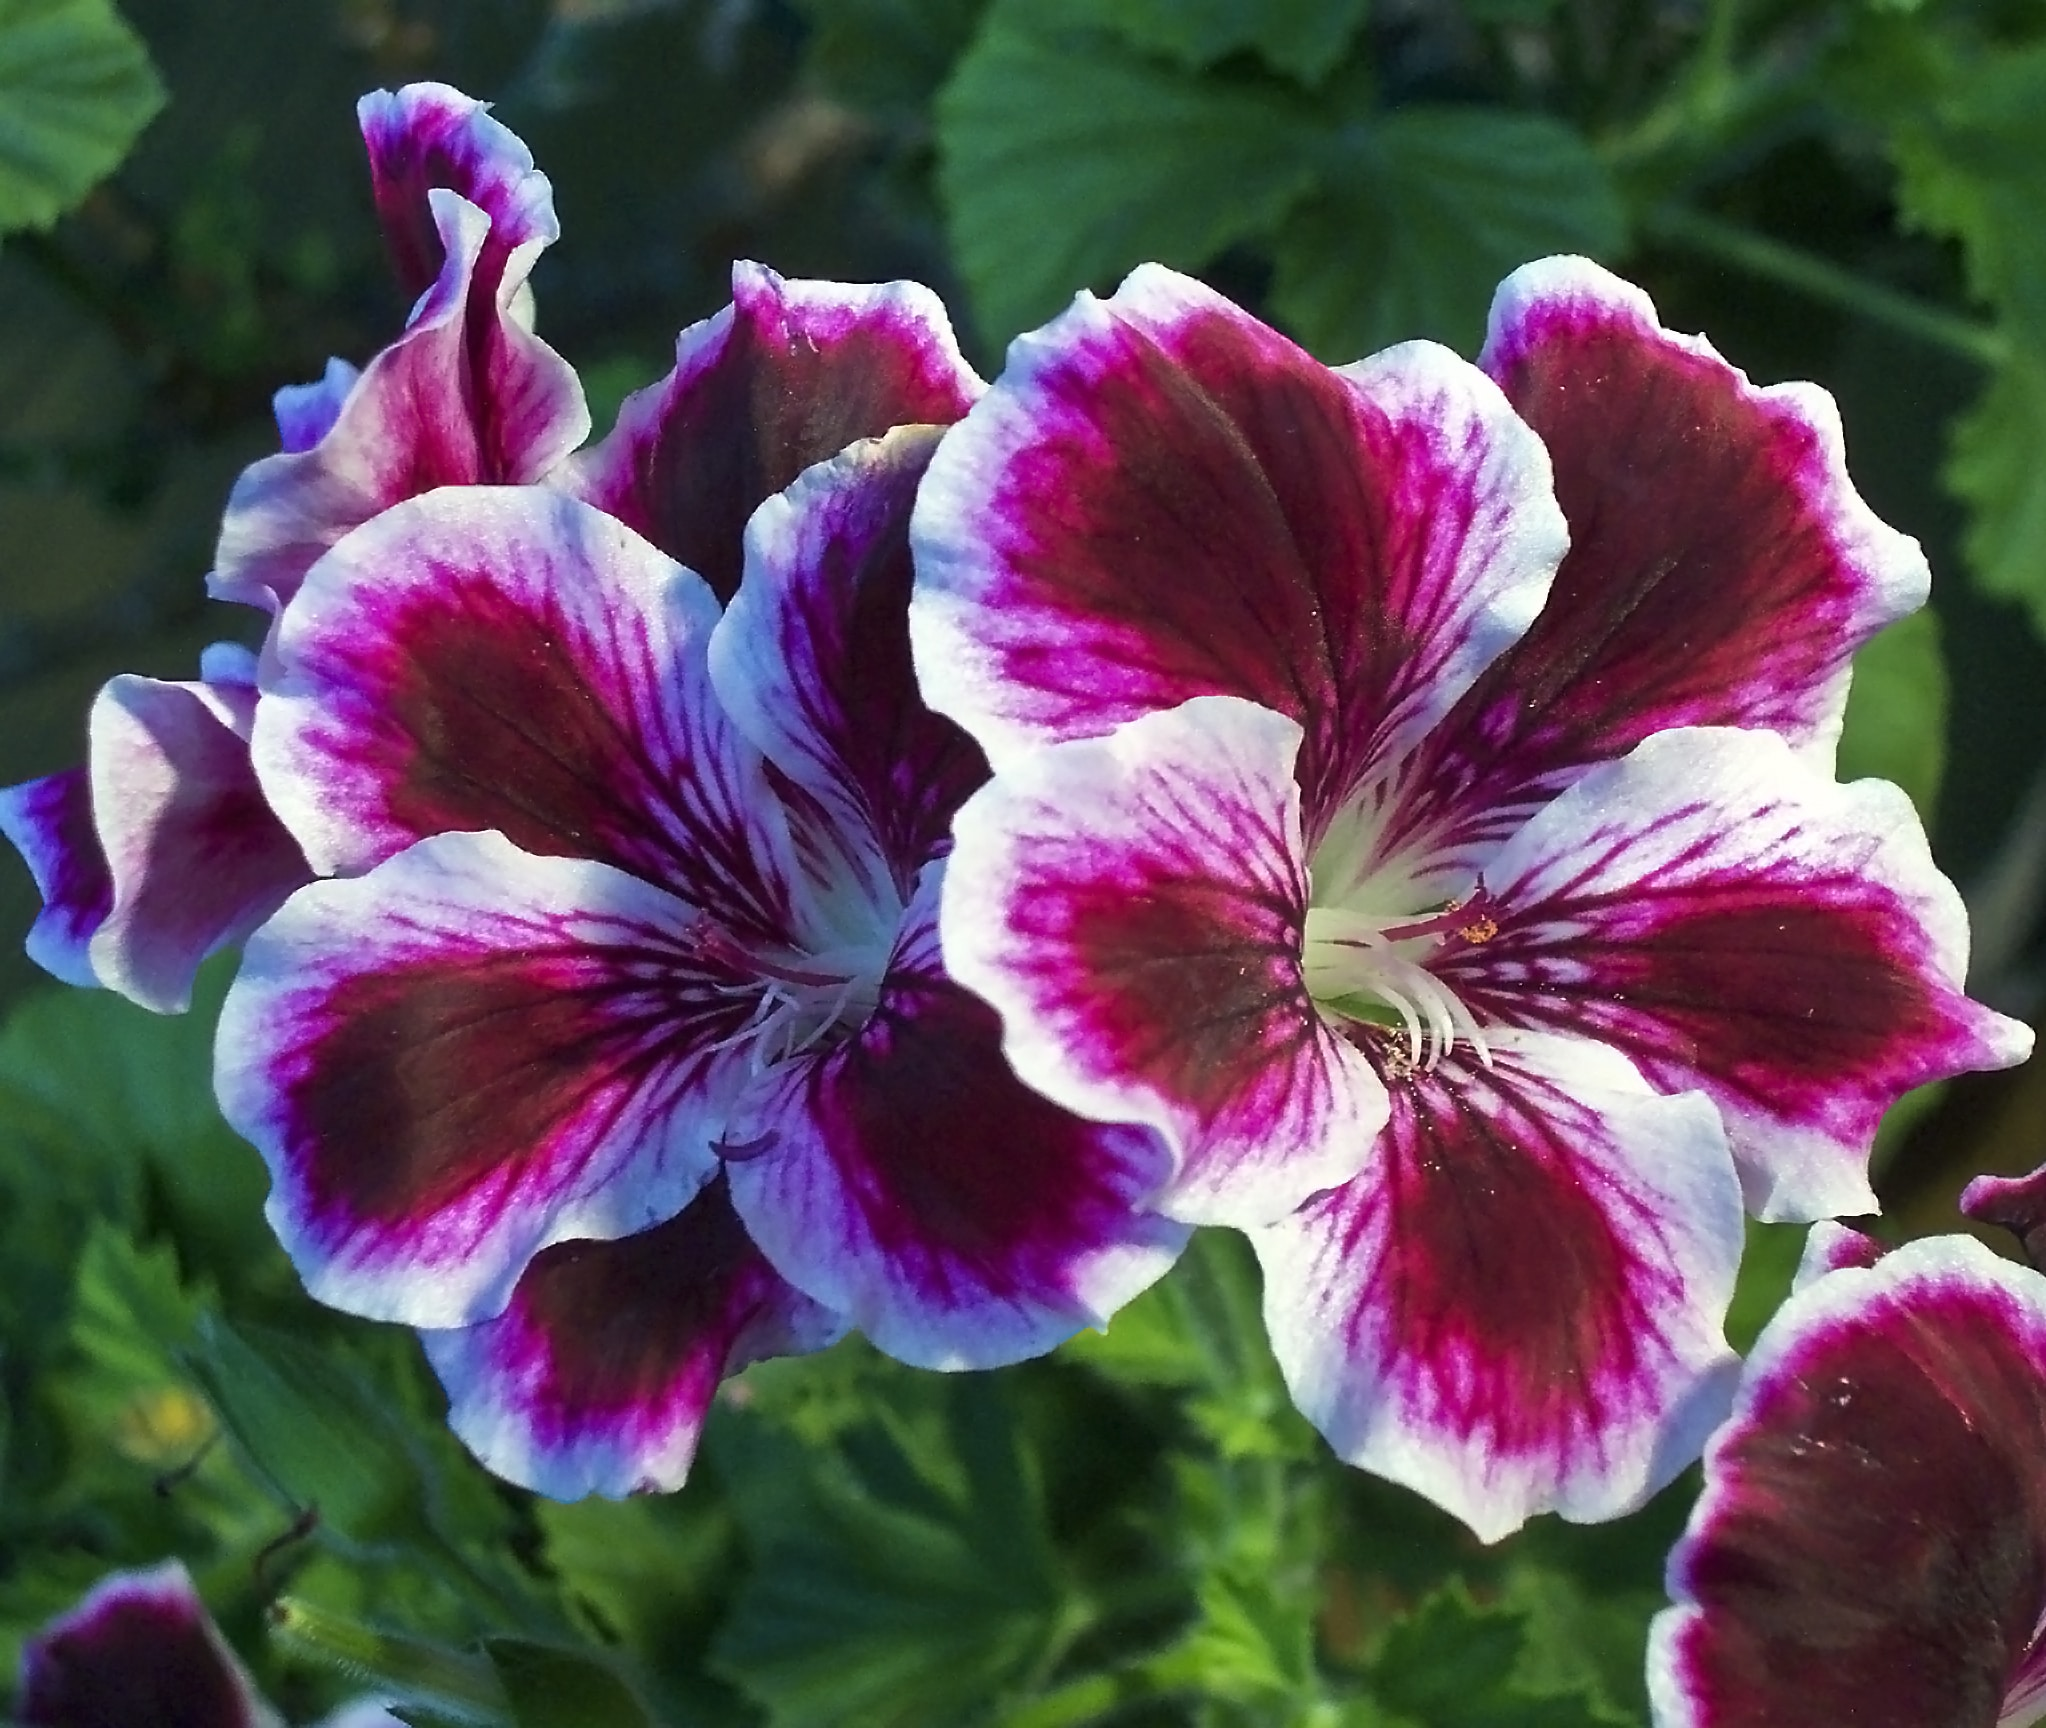 Pelargonium. (Angel Eyes).